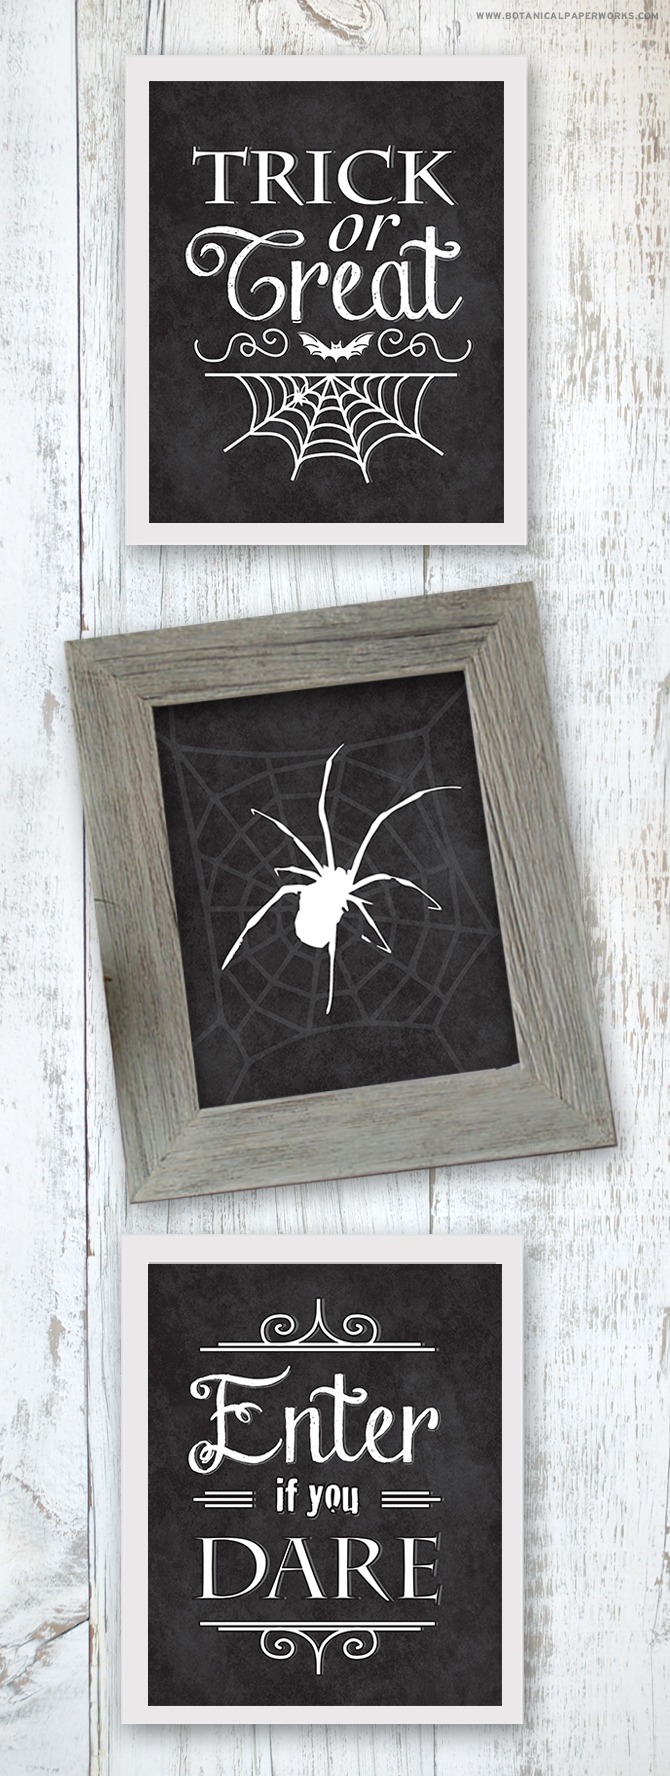 Doing #Halloween on a #budget this year? Get creative and still make your home one of the spookiest on the block using these 3 wall art #freeprintables!